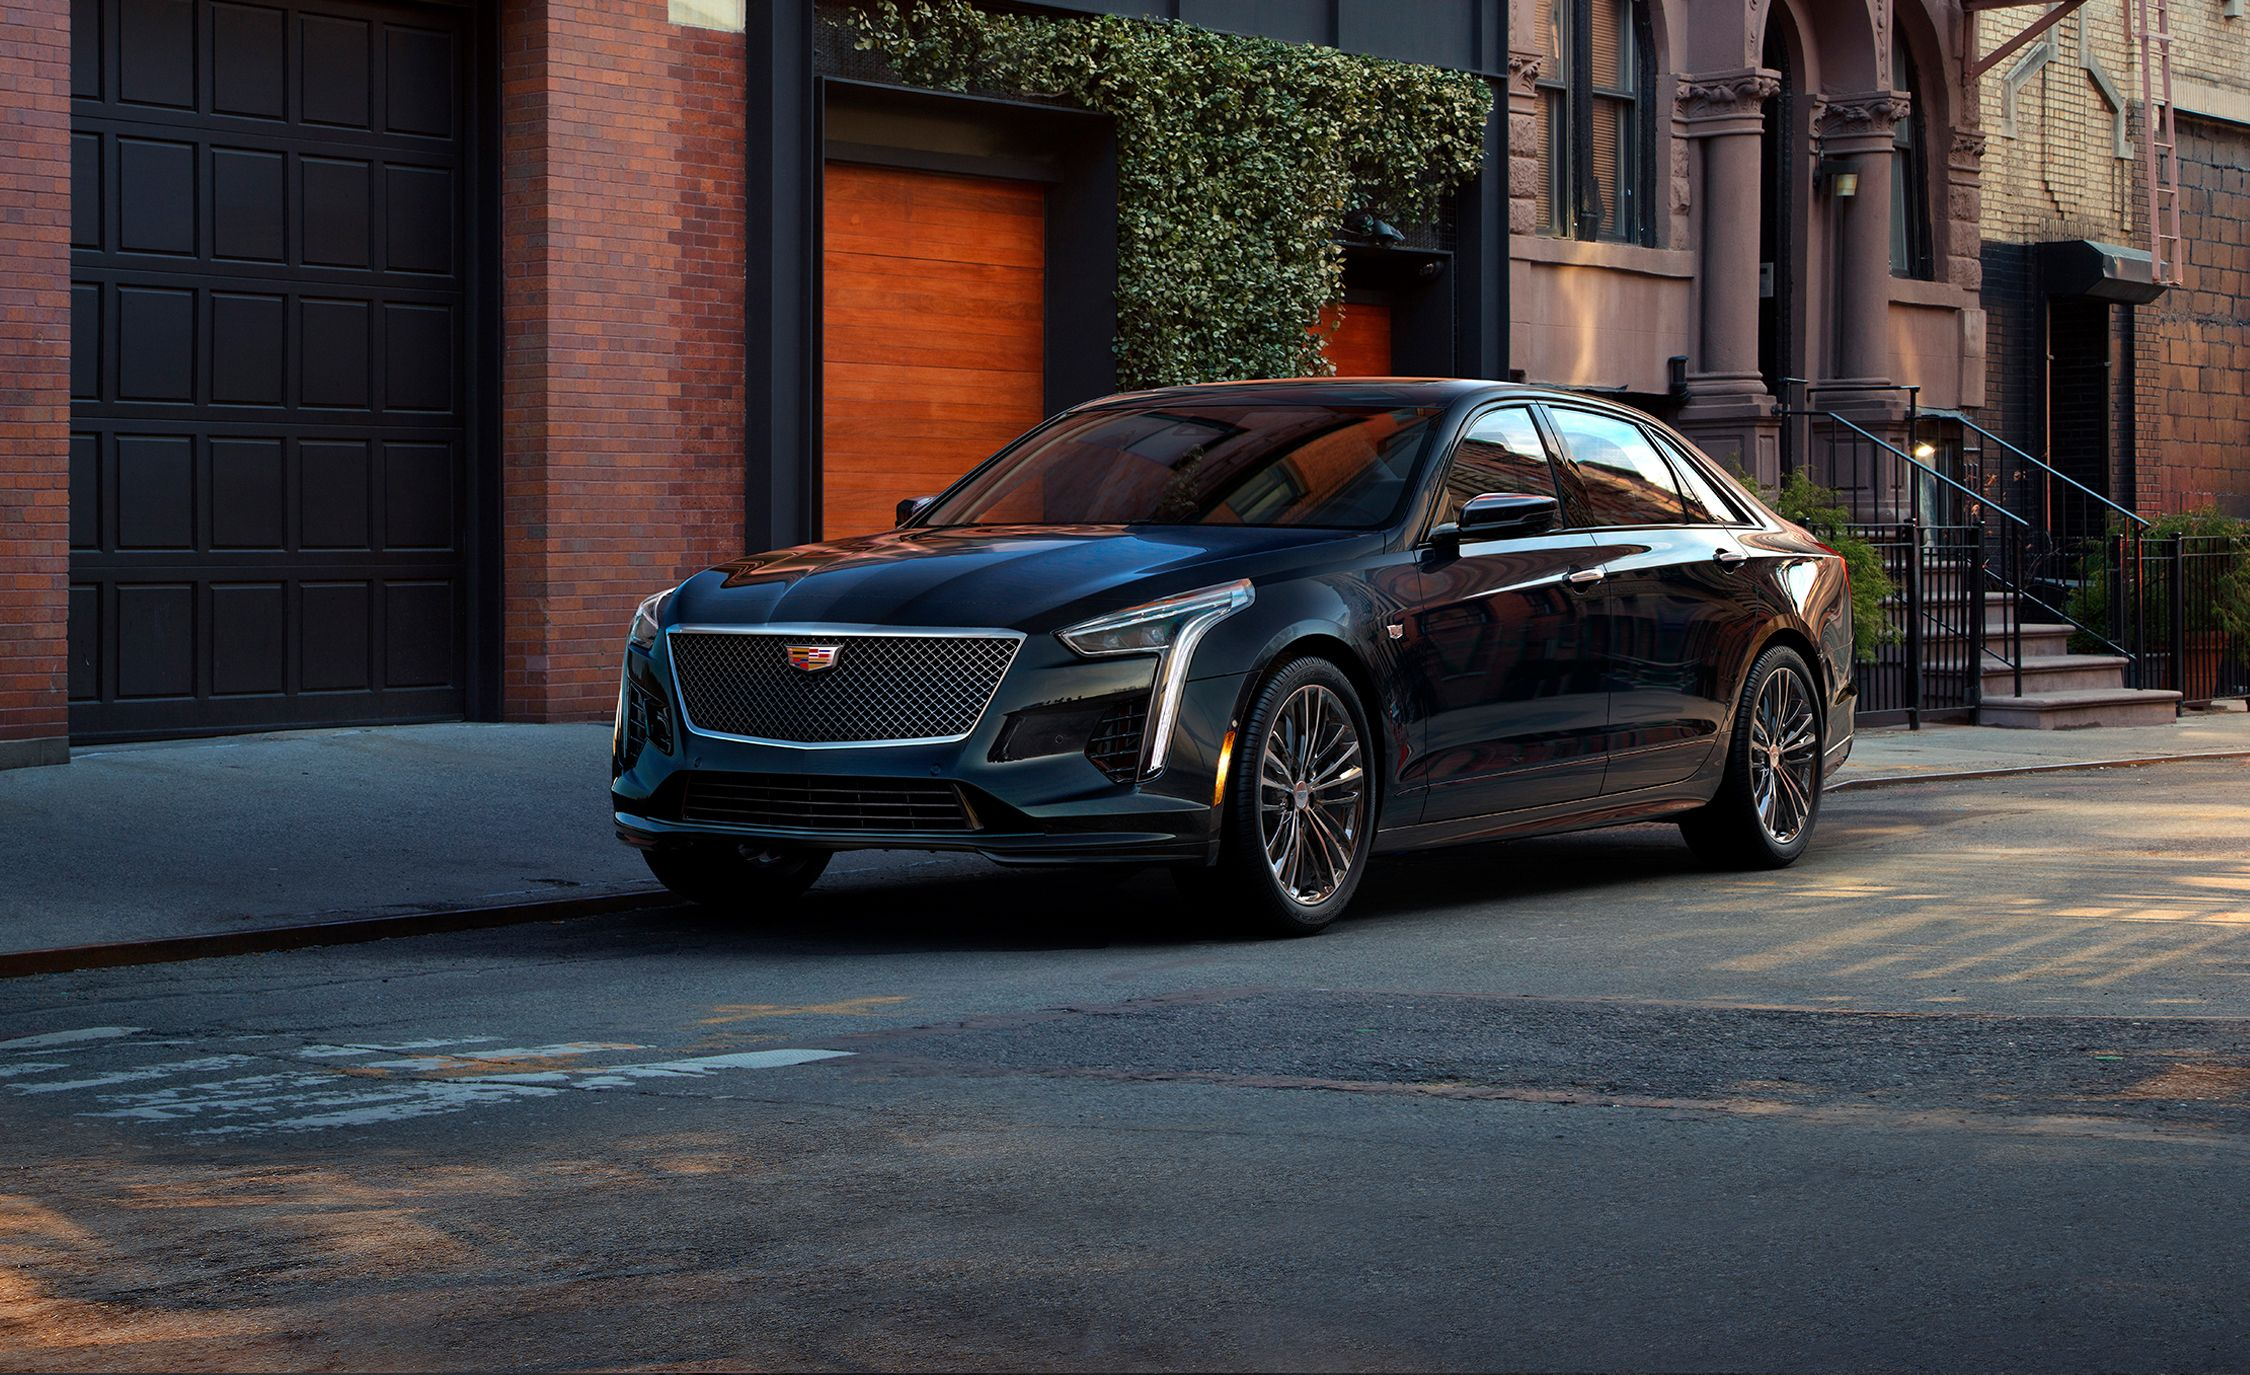 2019 Cadillac Ct6 V Announced New High Performance